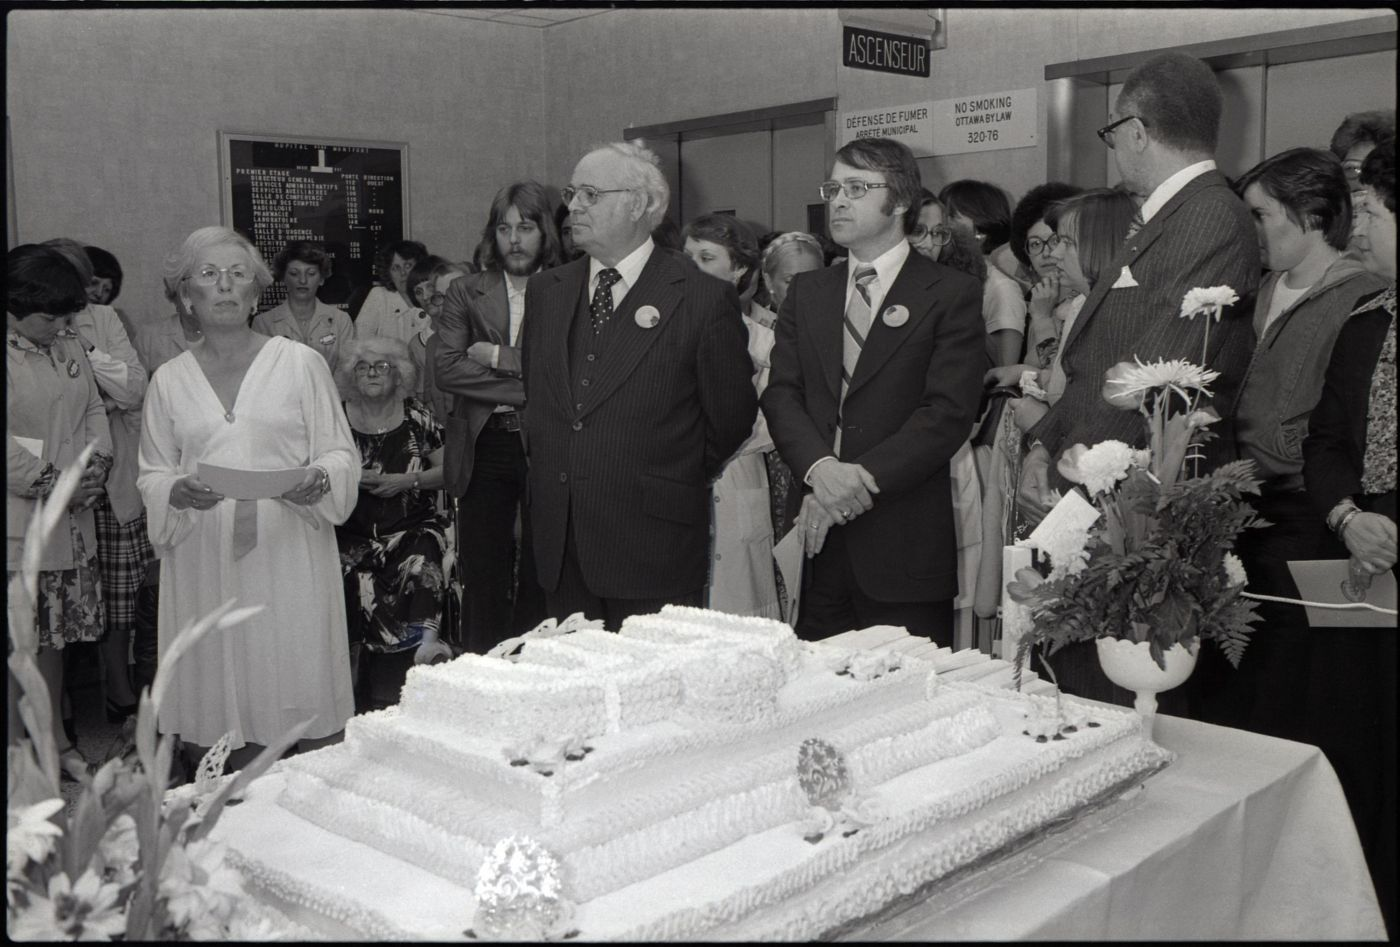 Black and white photograph of a group of people standing around a huge cake decorated with the logo of the Montfort Hospital. Two wreaths of flowers are placed on the table. In the foreground, three men in suits wearing the same button, and an elegantly dressed woman holding a sheaf of papers.